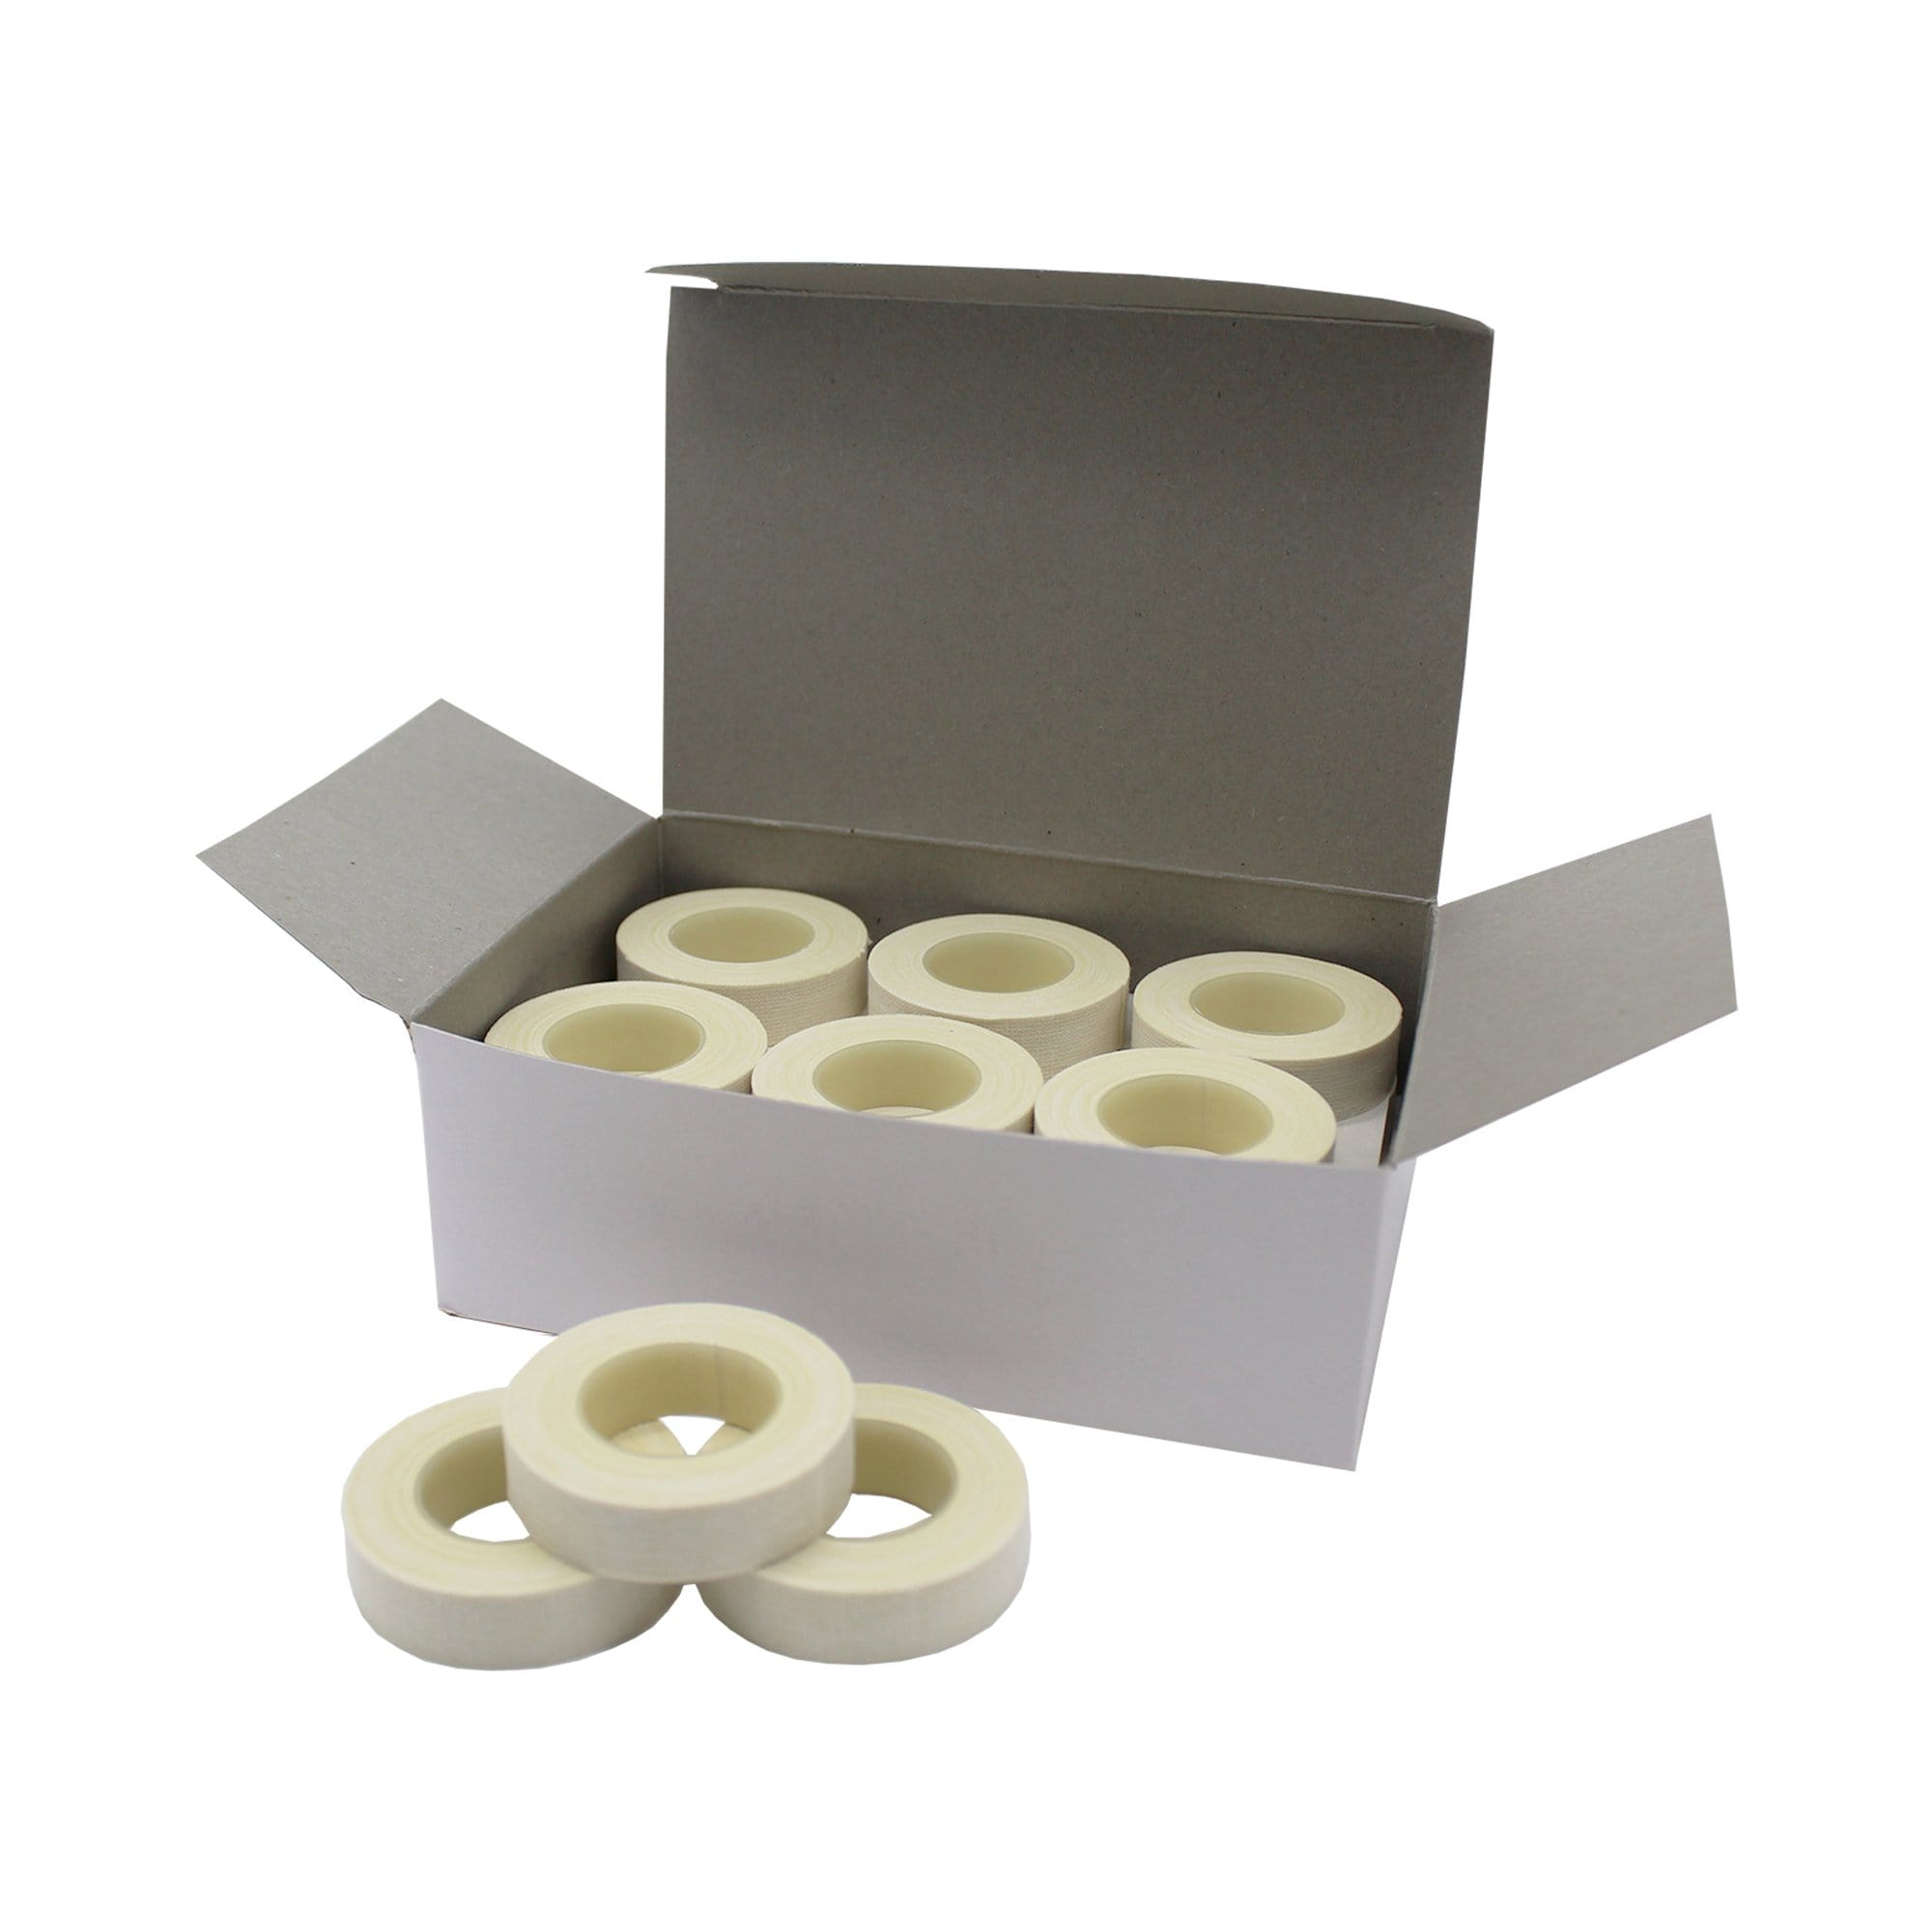 Adhesive Cotton Surgical Tape Roll, 1.27cm x 4.5m - Ready First Aid - (Box of 24)